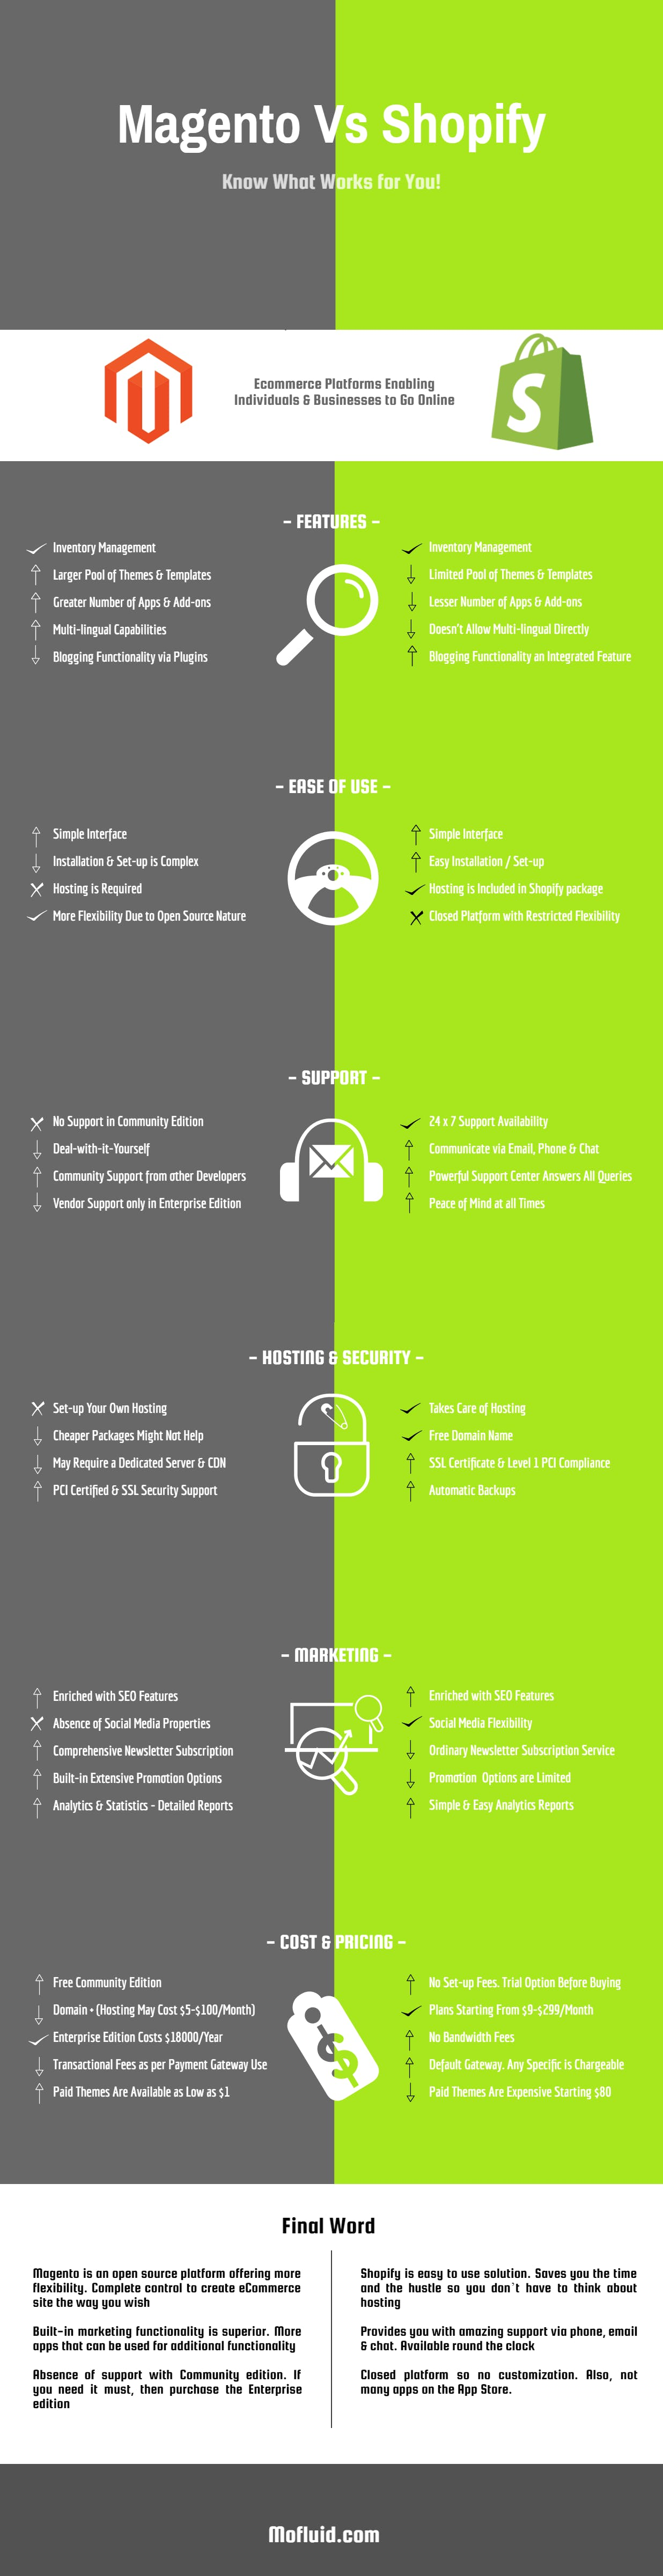 shopify and magento infographic